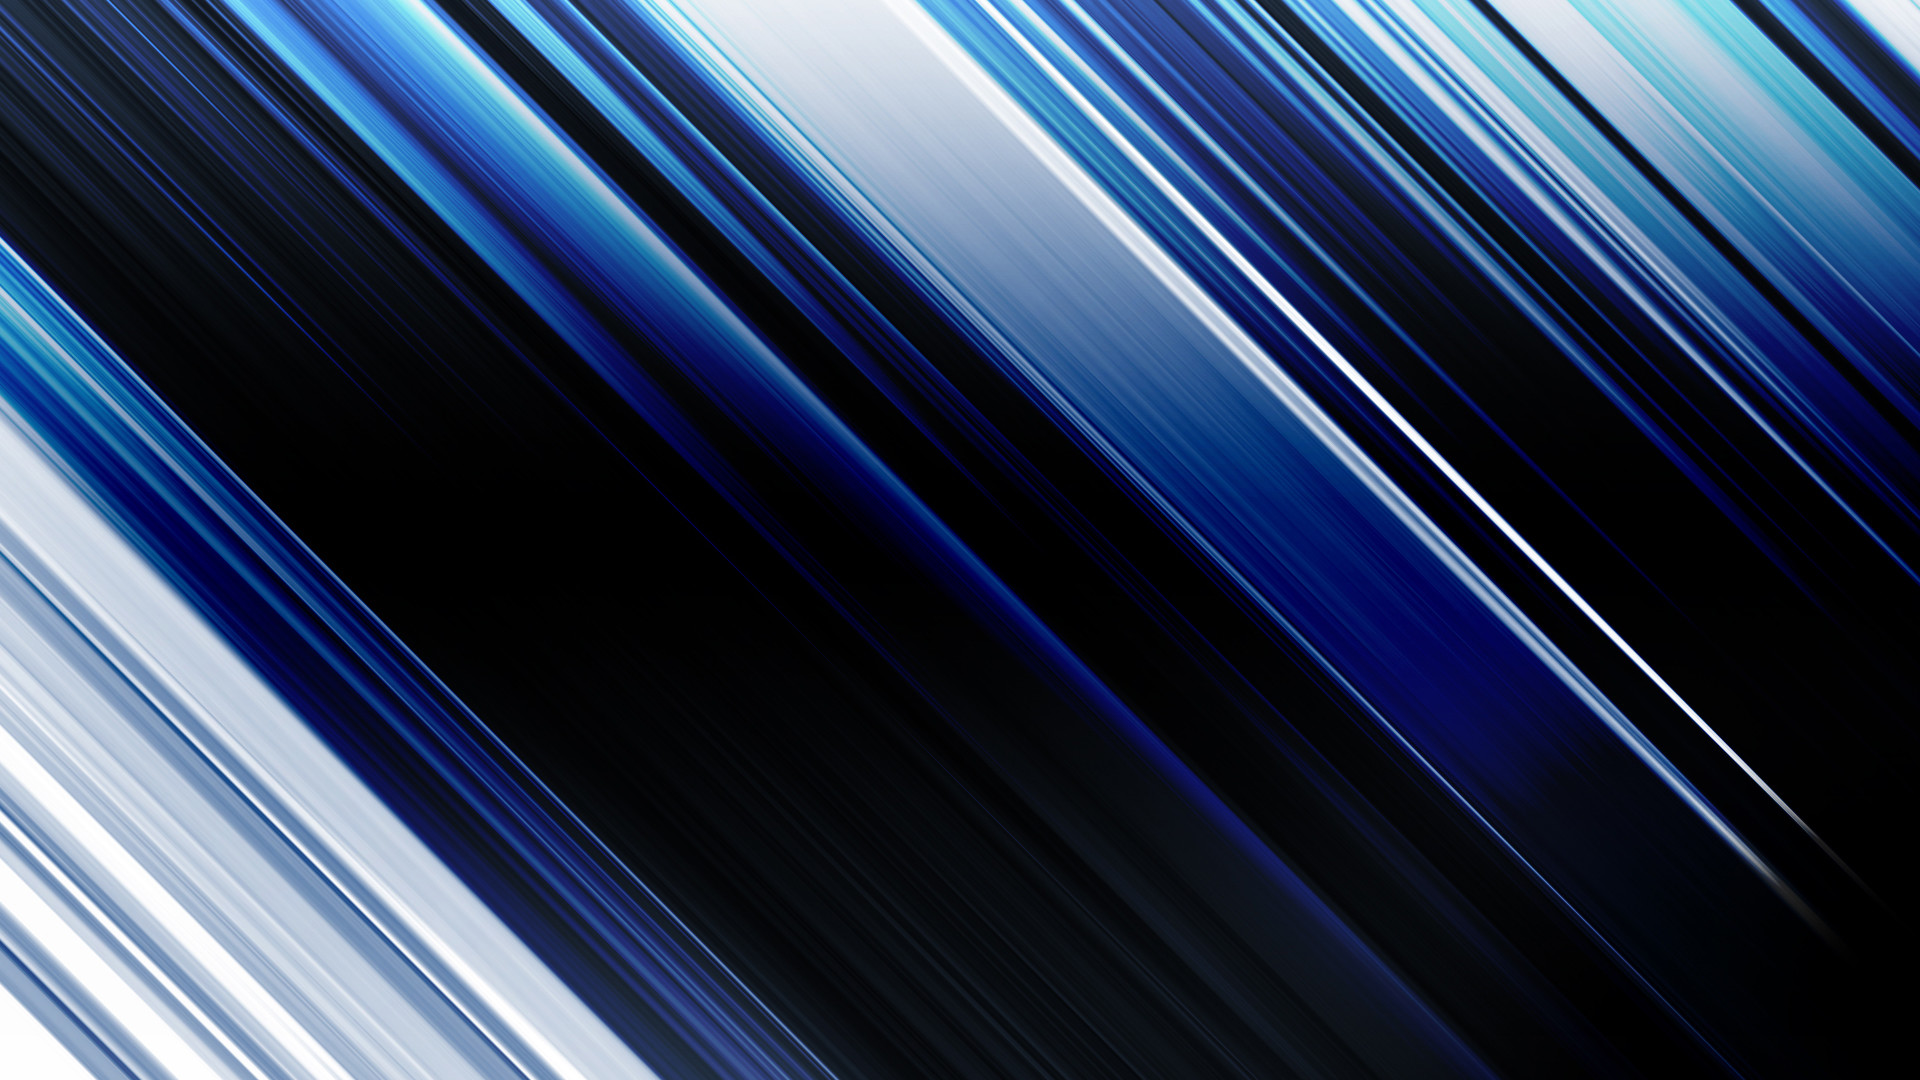 1920x1080 Blue Abstract Wallpaper High Quality Resolution Hd Tumblr Wallpaer .